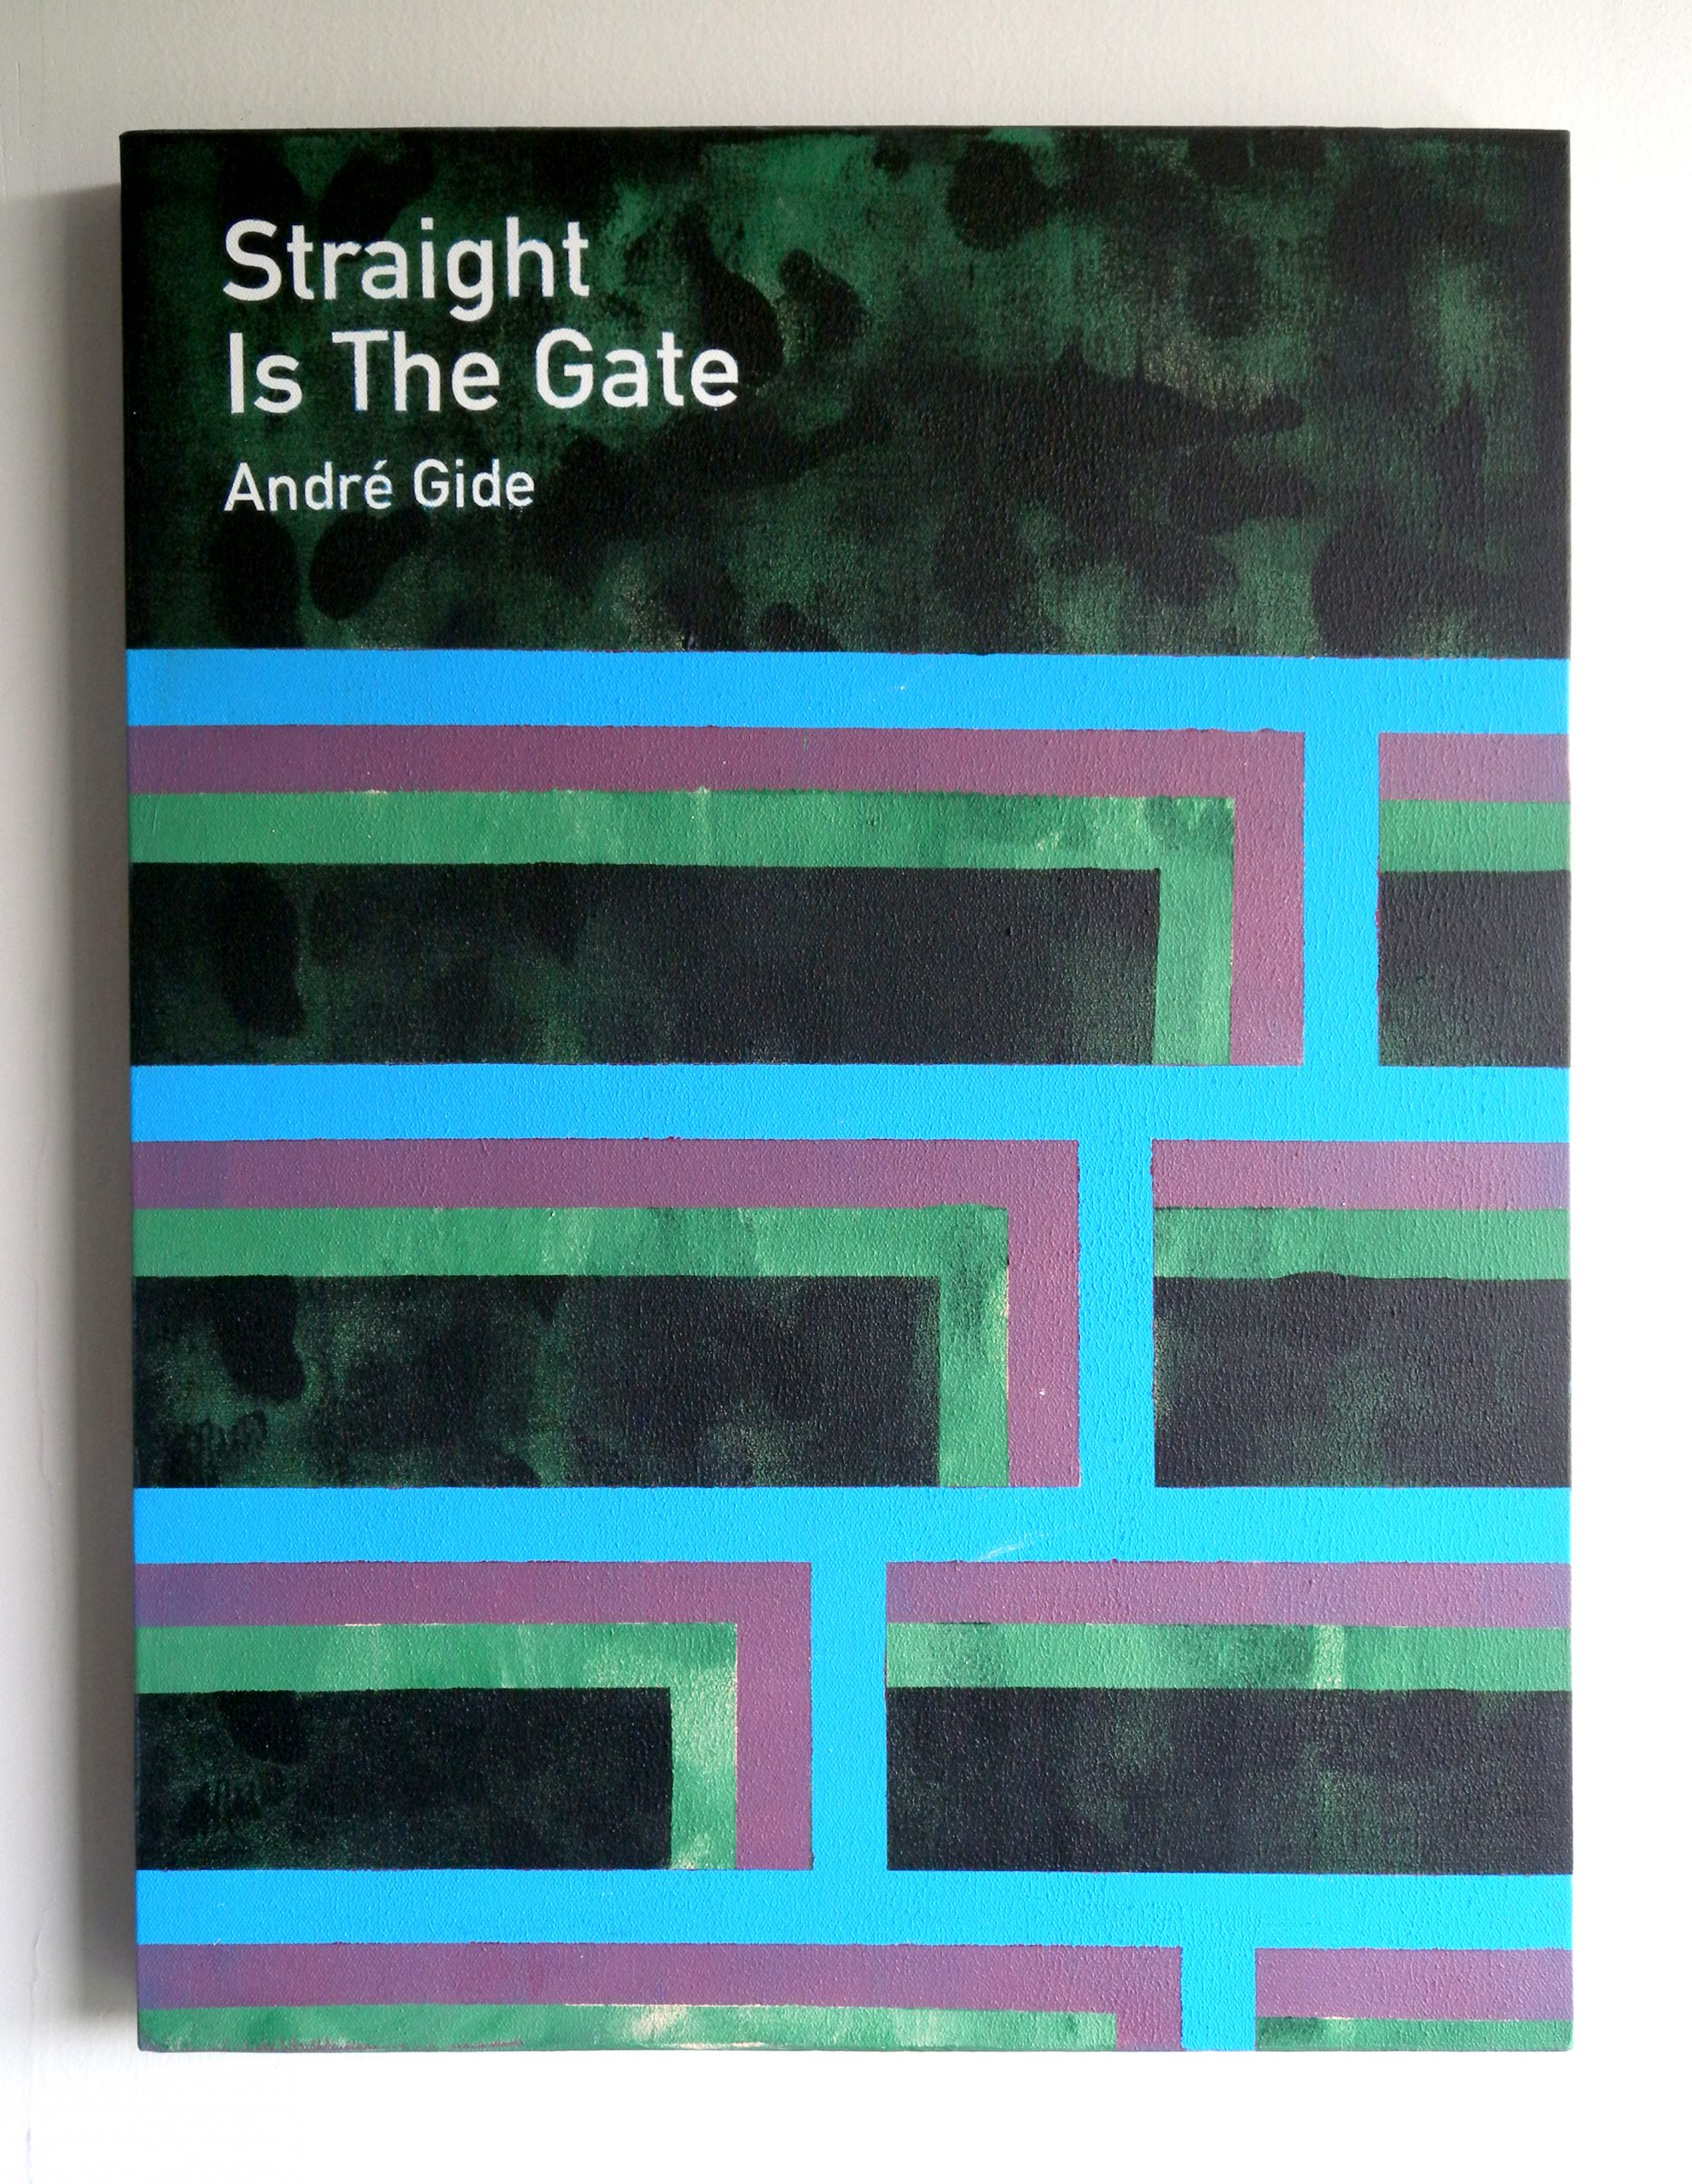 Straight Is The Gate / André Gide